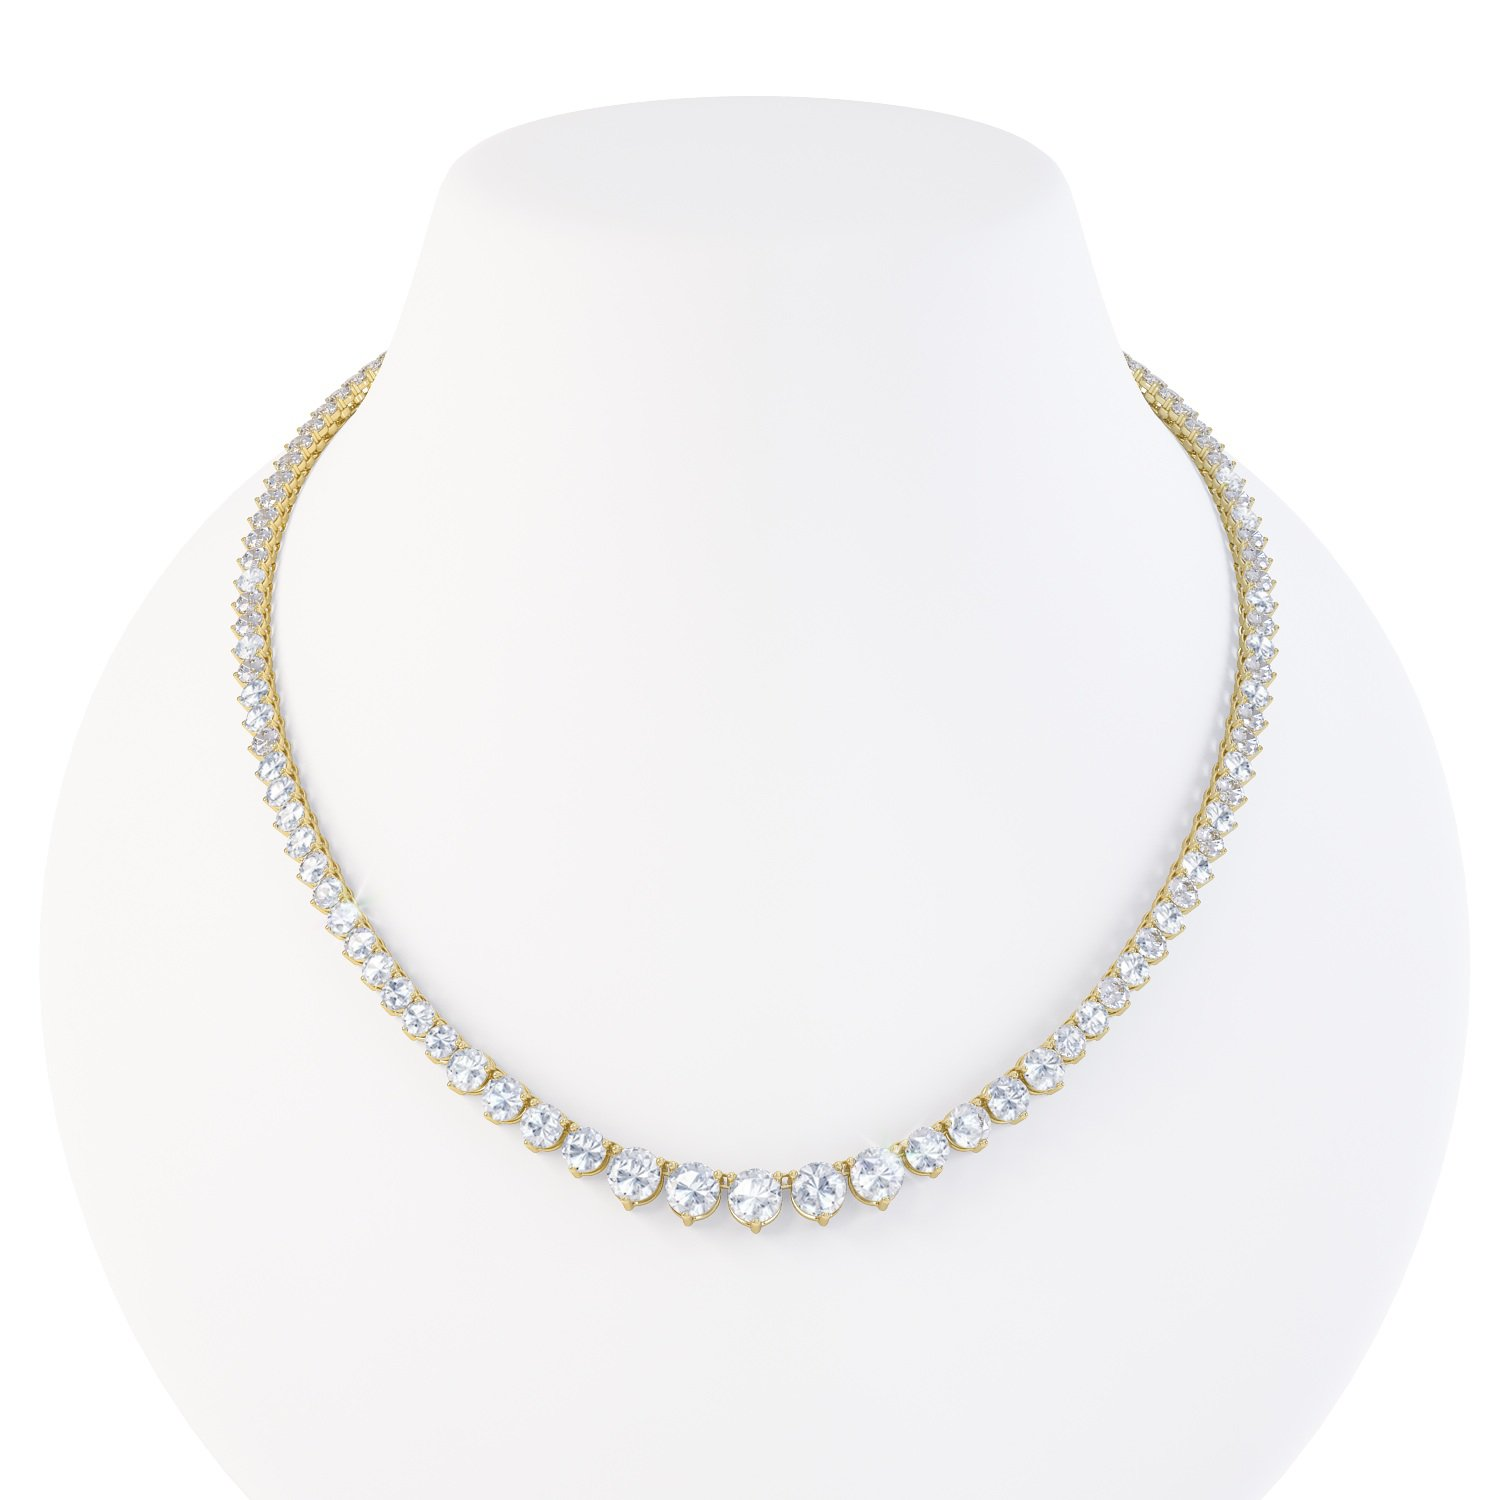 Eternity White Sapphire 18ct Gold Vermeil Tennis Necklace